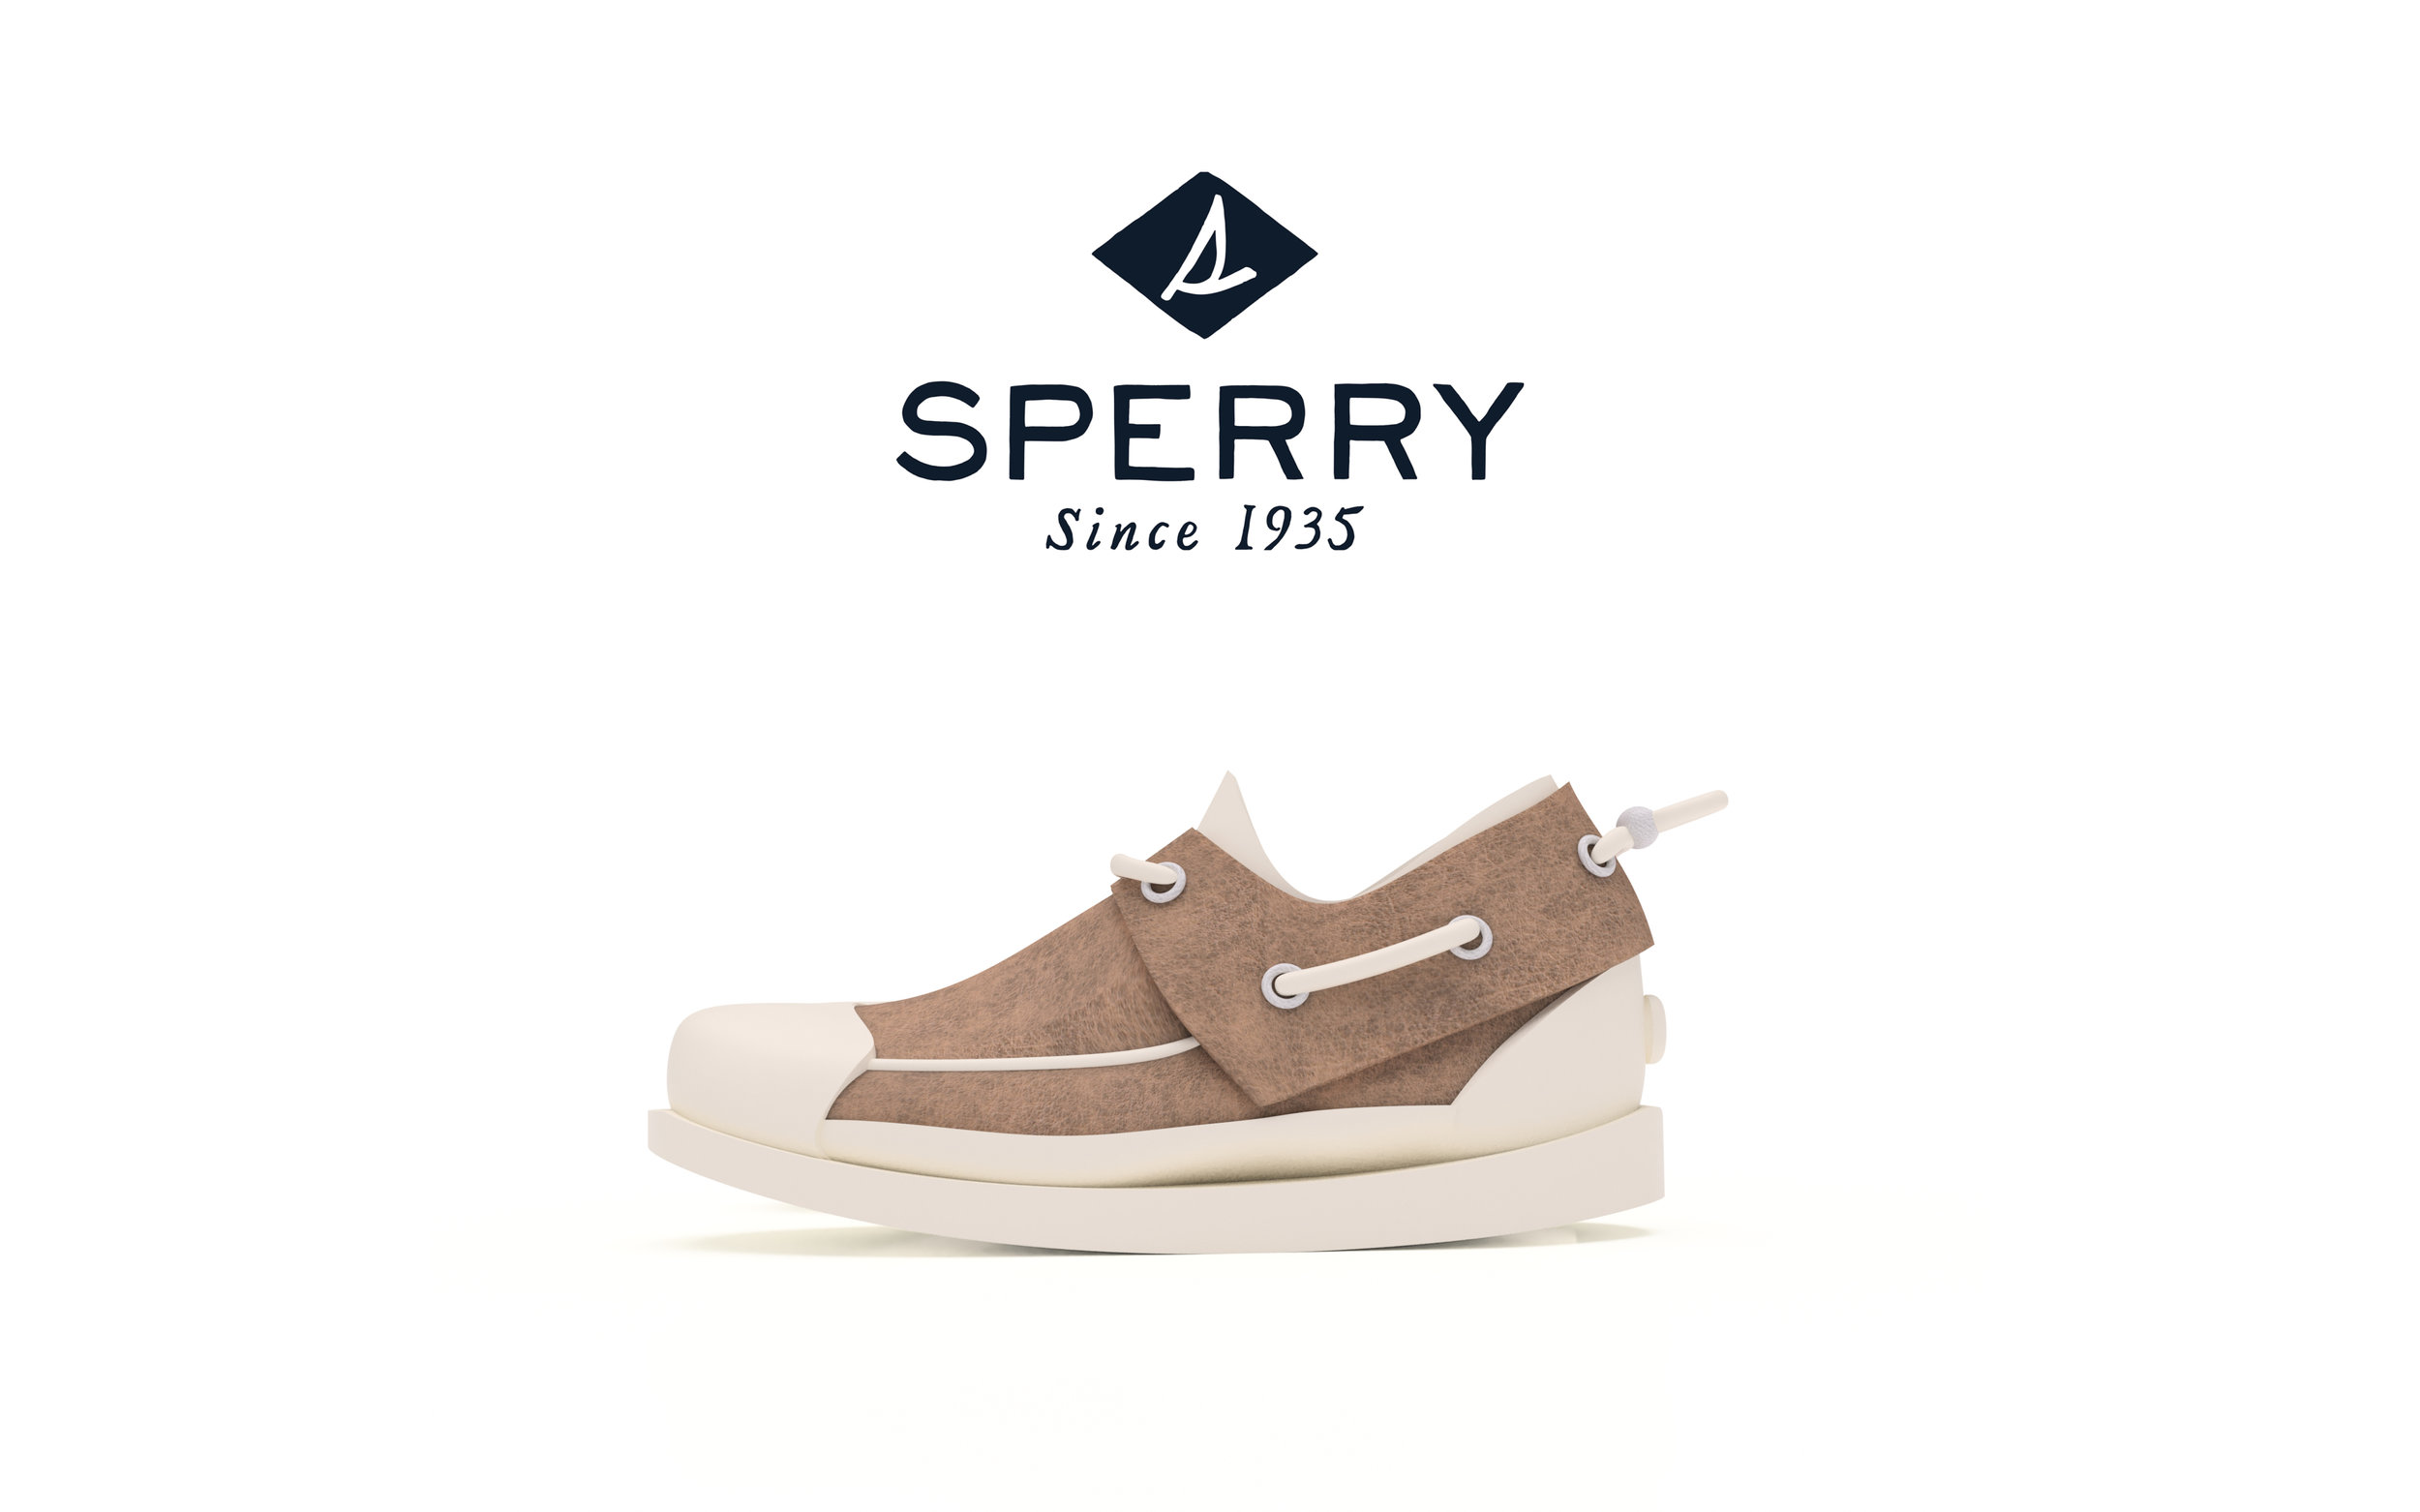 sperry website11.jpg